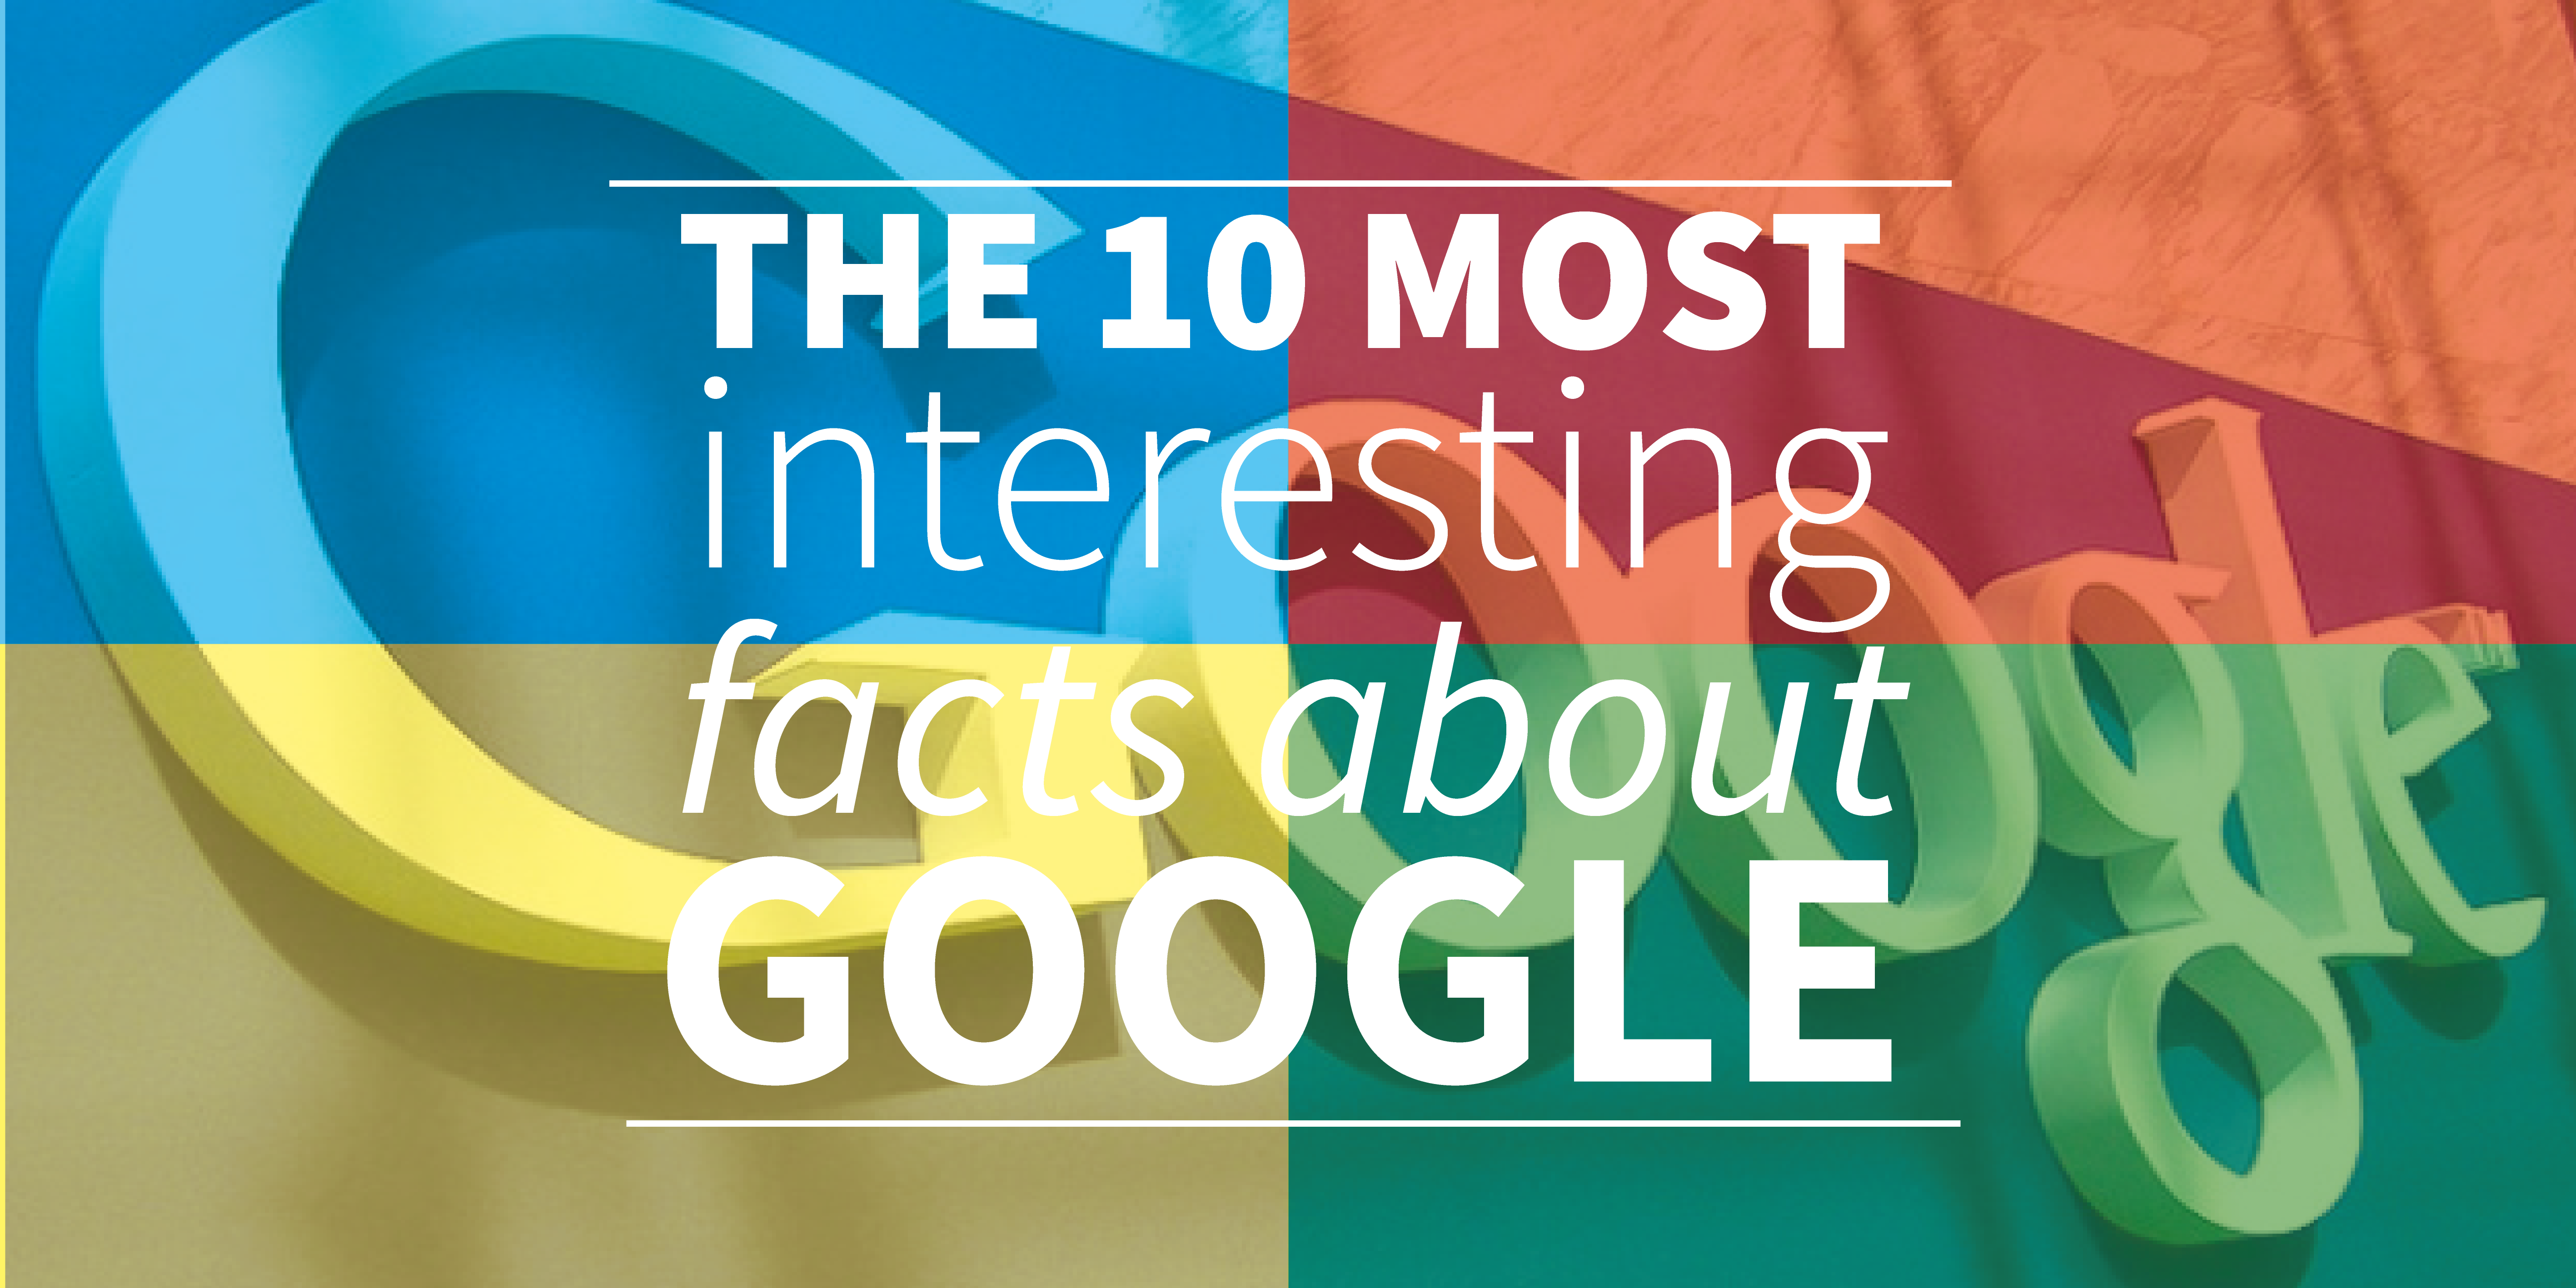 16Curious Things You've Probably Never Had Time toGoogle